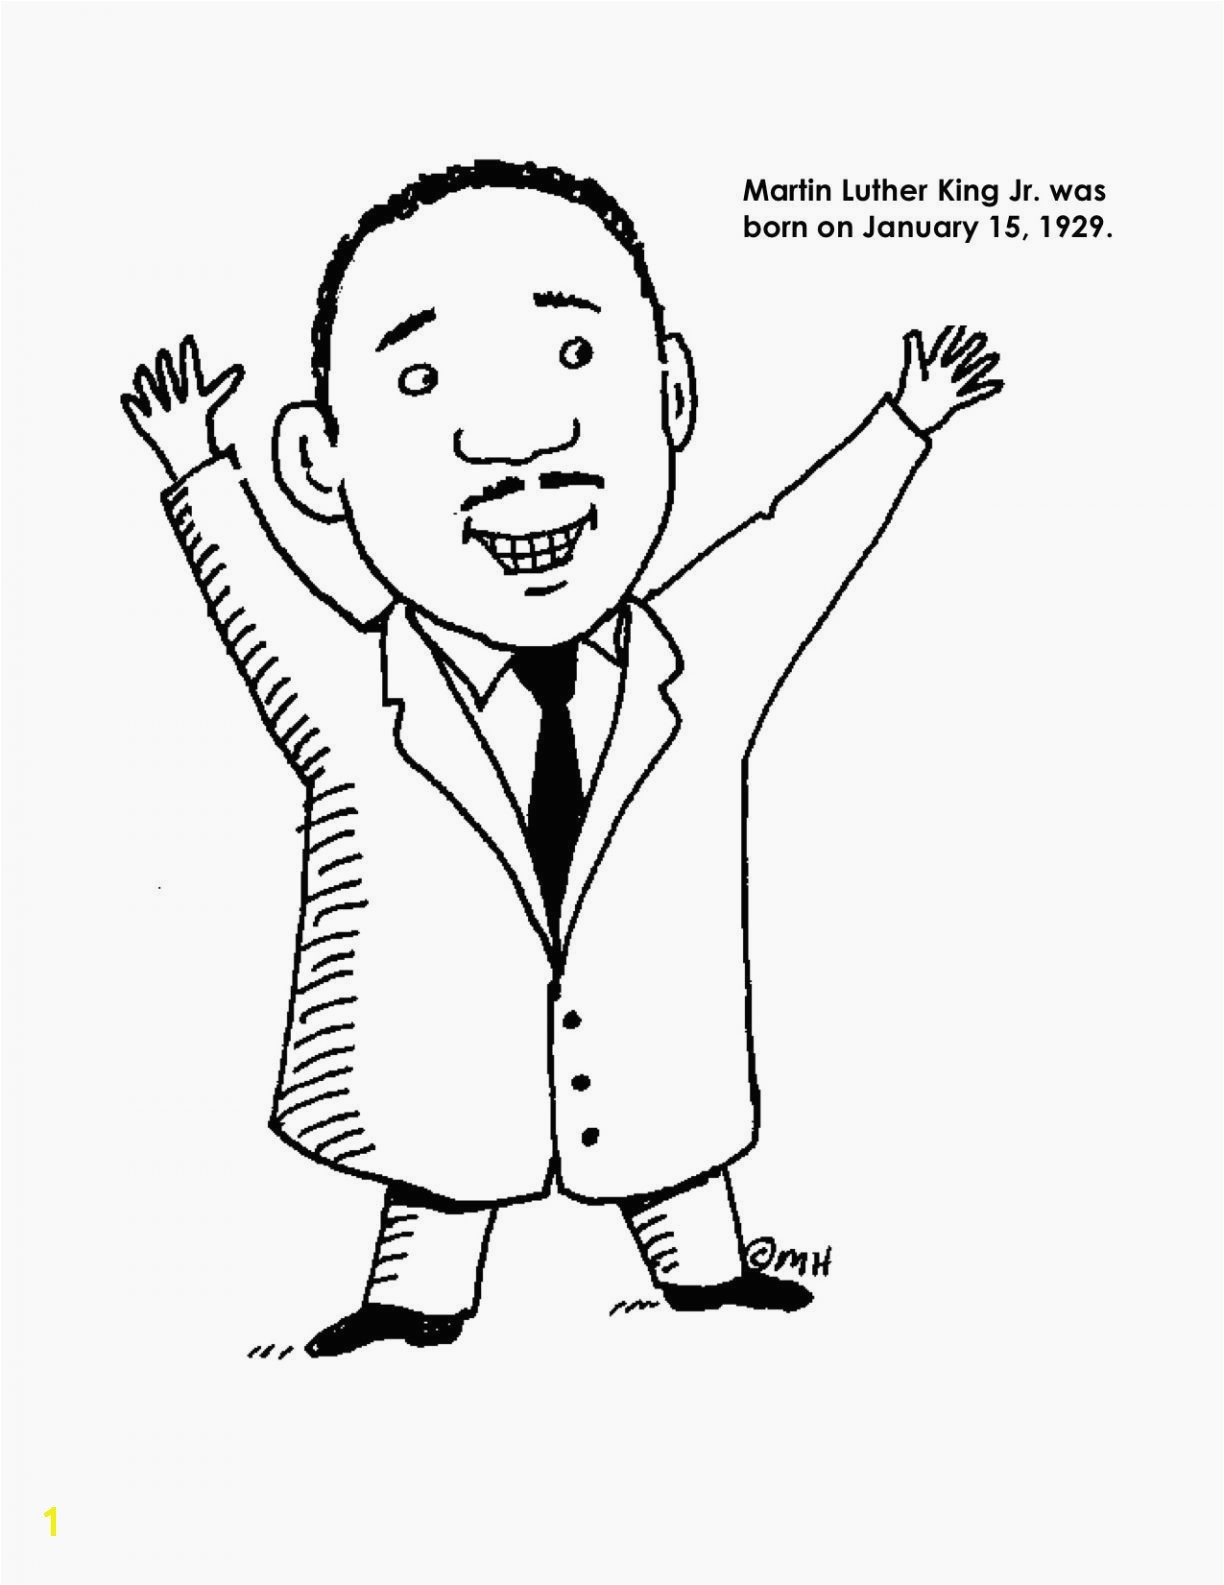 Martin Luther King Jr Coloring Pages Martin Luther King Jr Coloring Pages Printable Coloring Pages